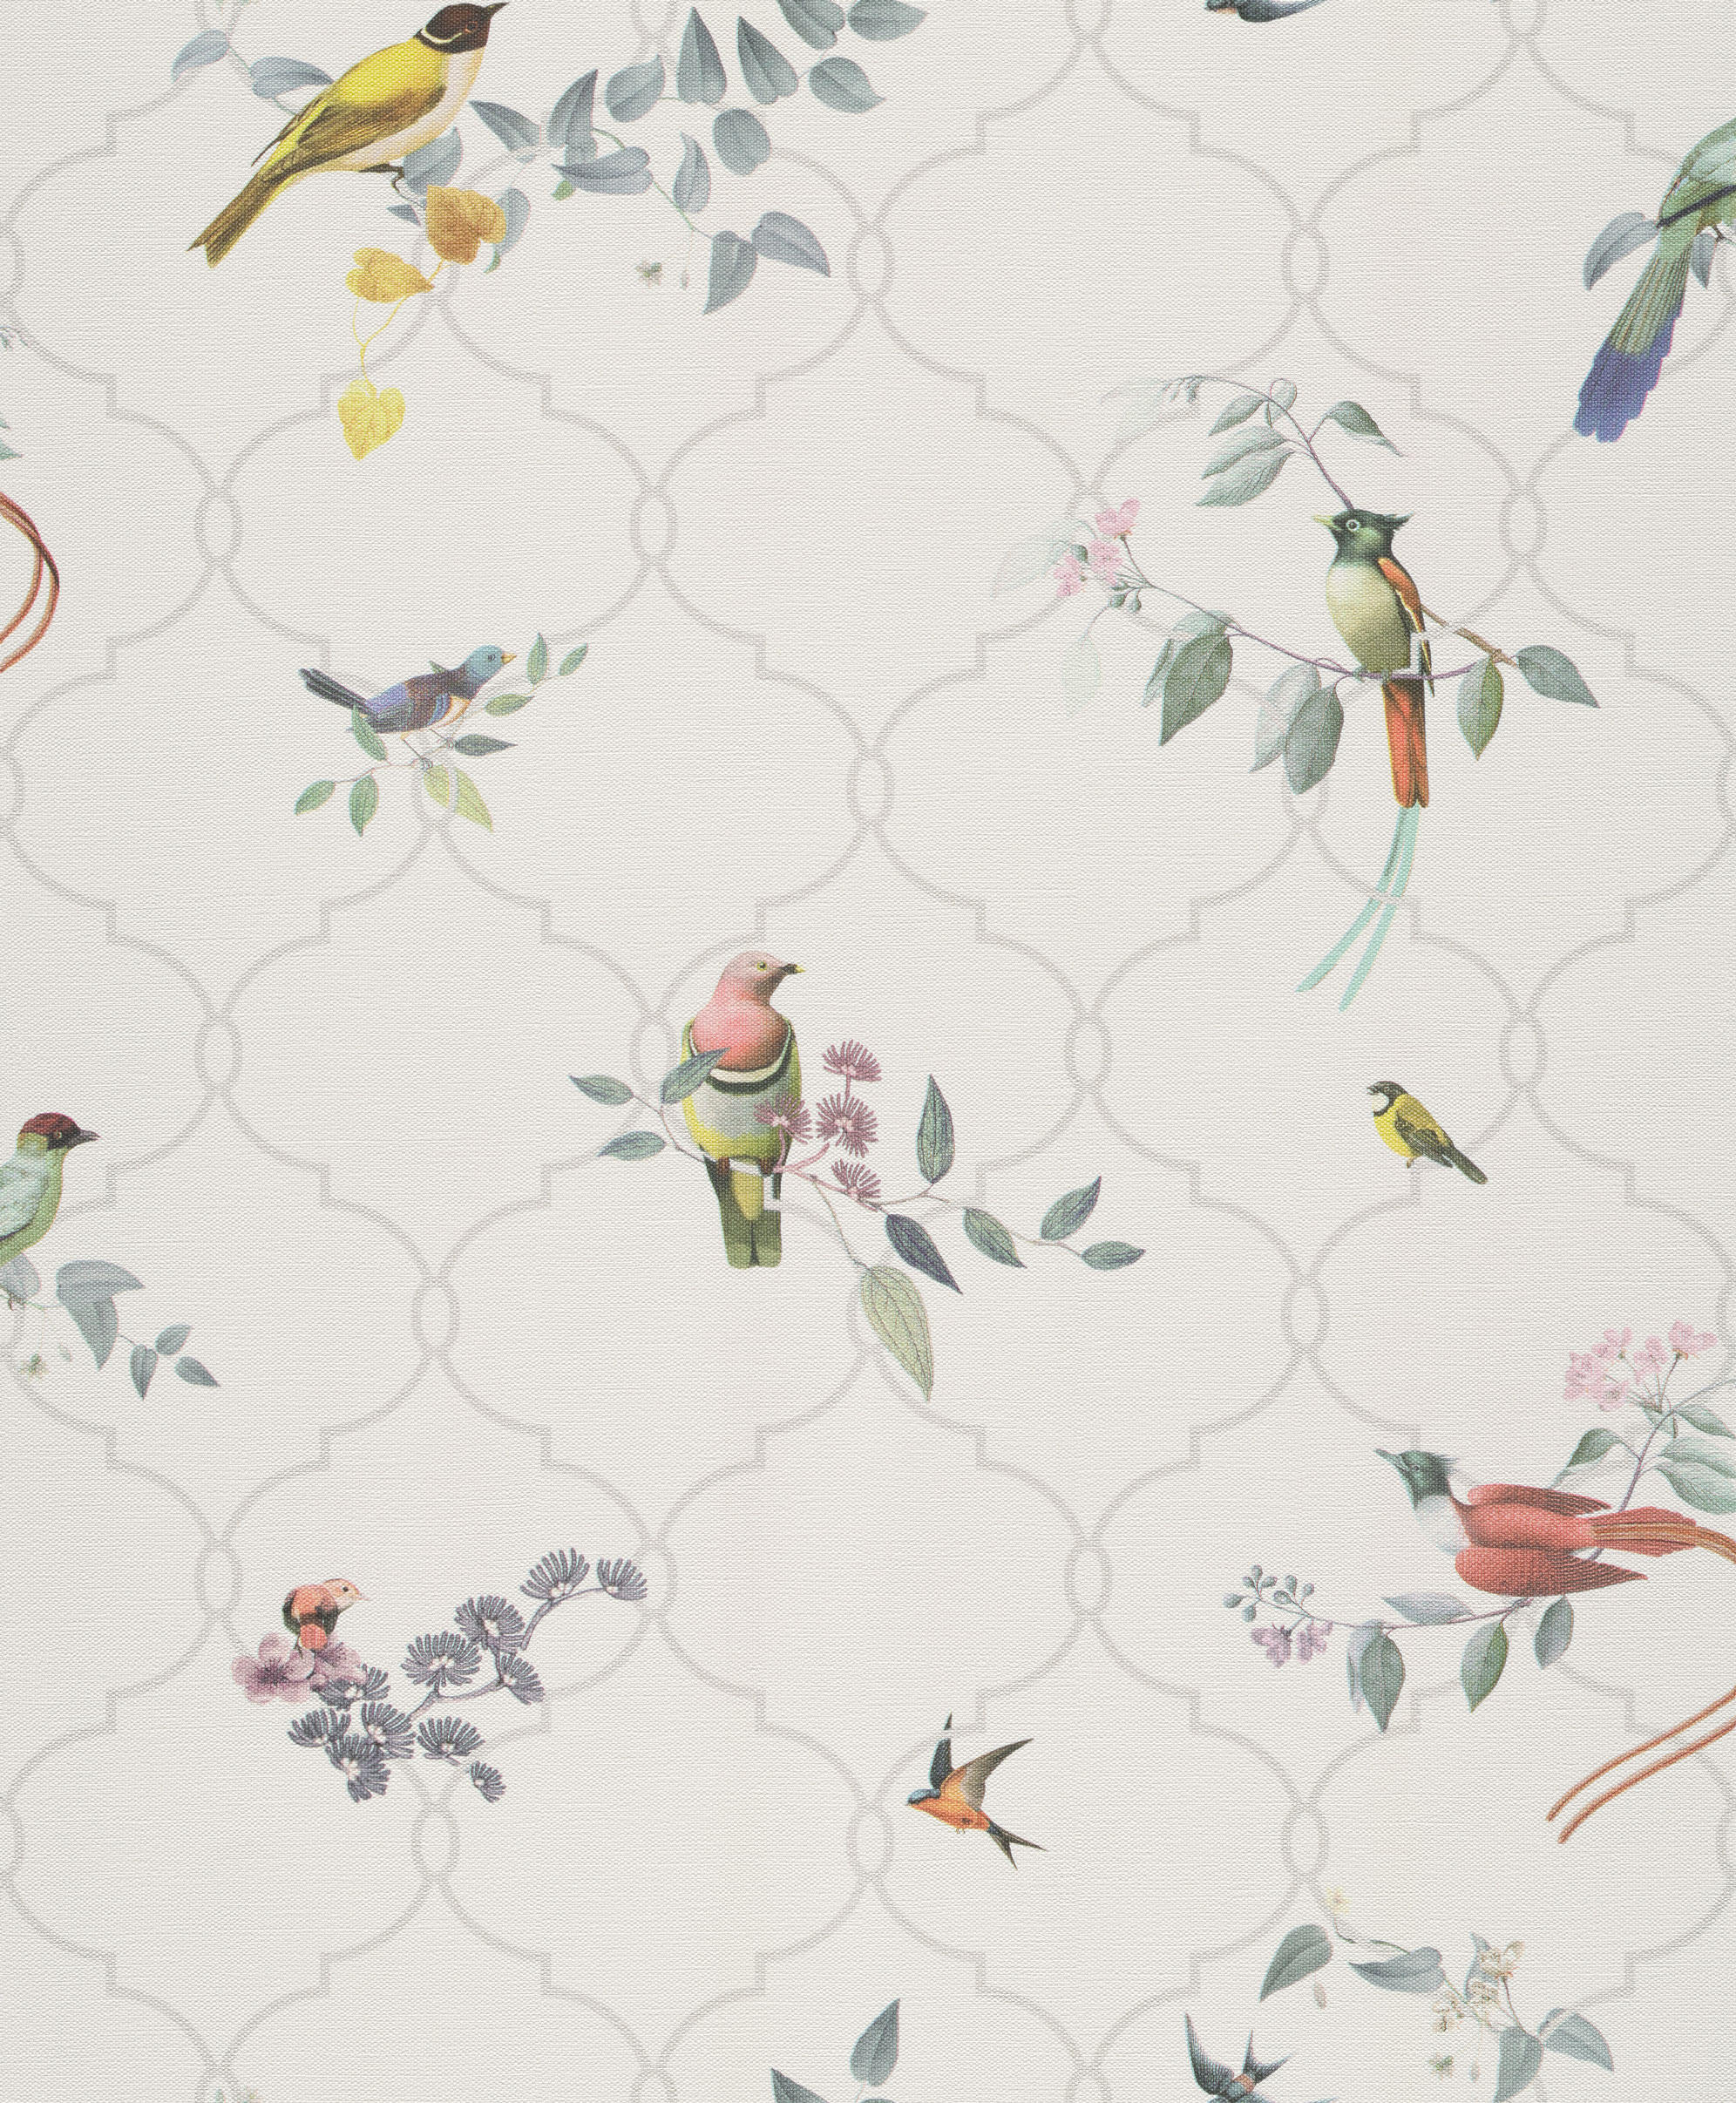 Haiku Wall Coverings Wallpapers From Christian Fischbacher